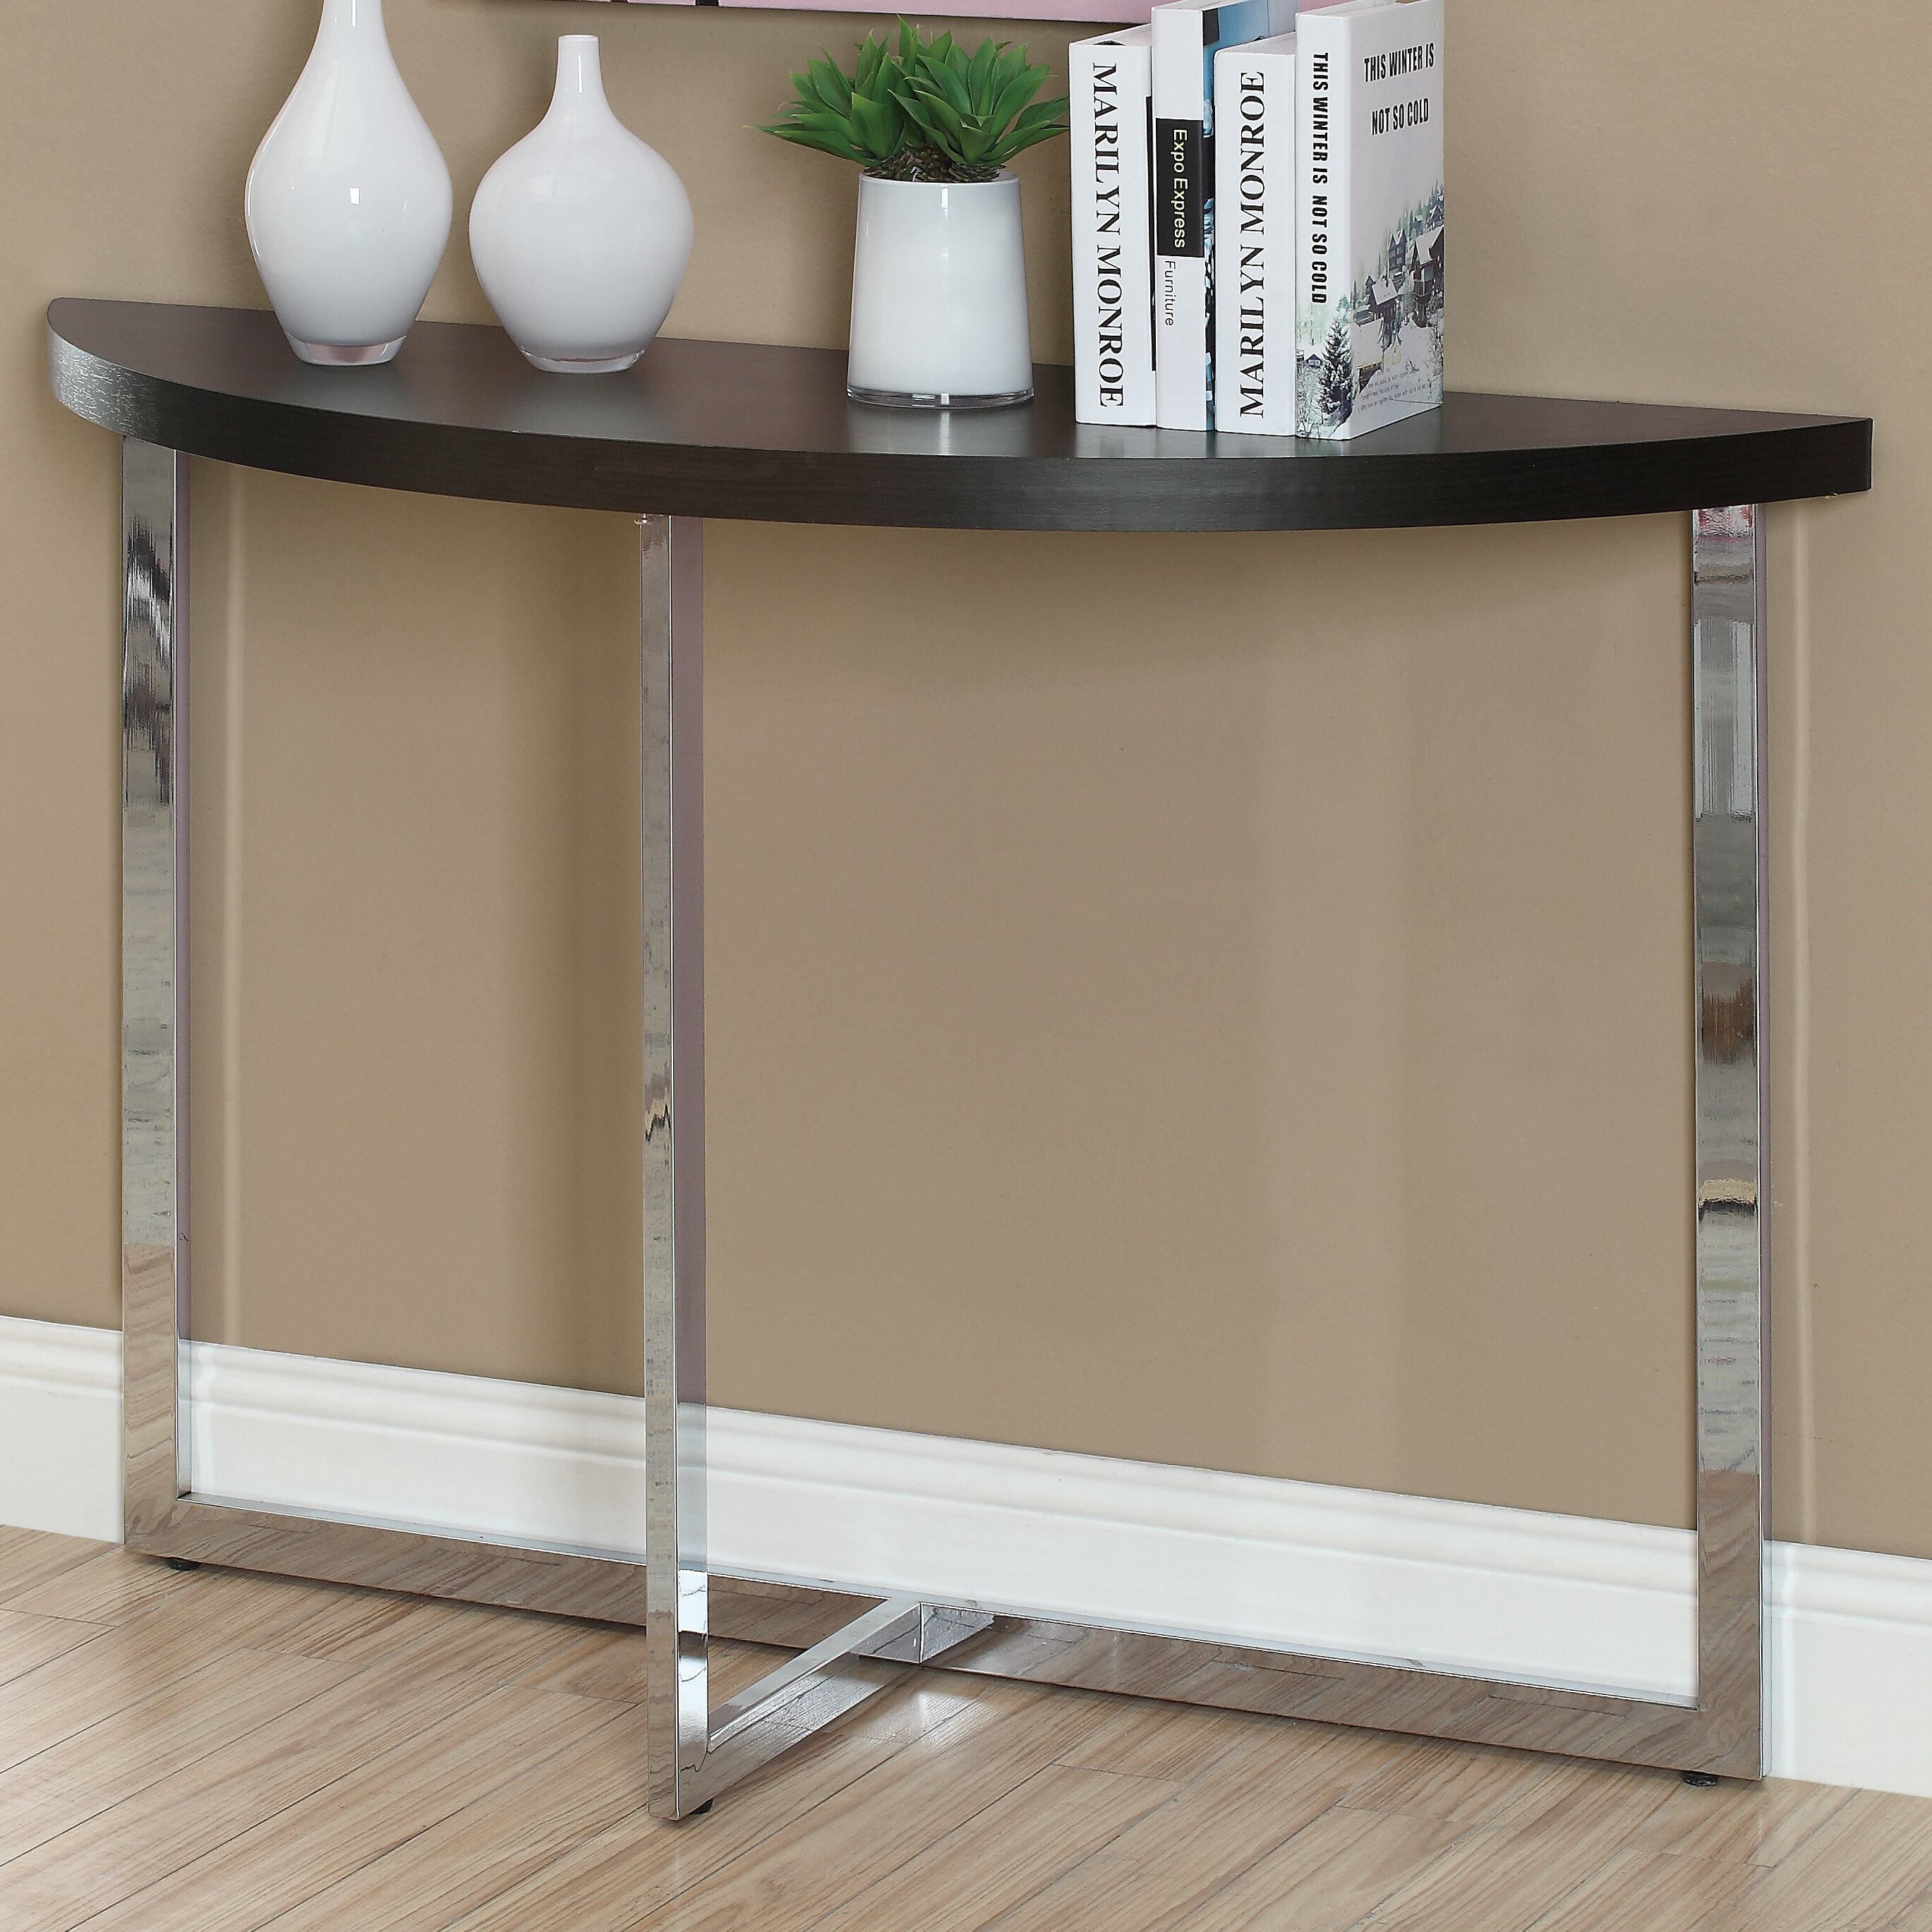 half moon console table Monarch Specialties Inc. Half Moon Console Table | Wayfair half moon console table